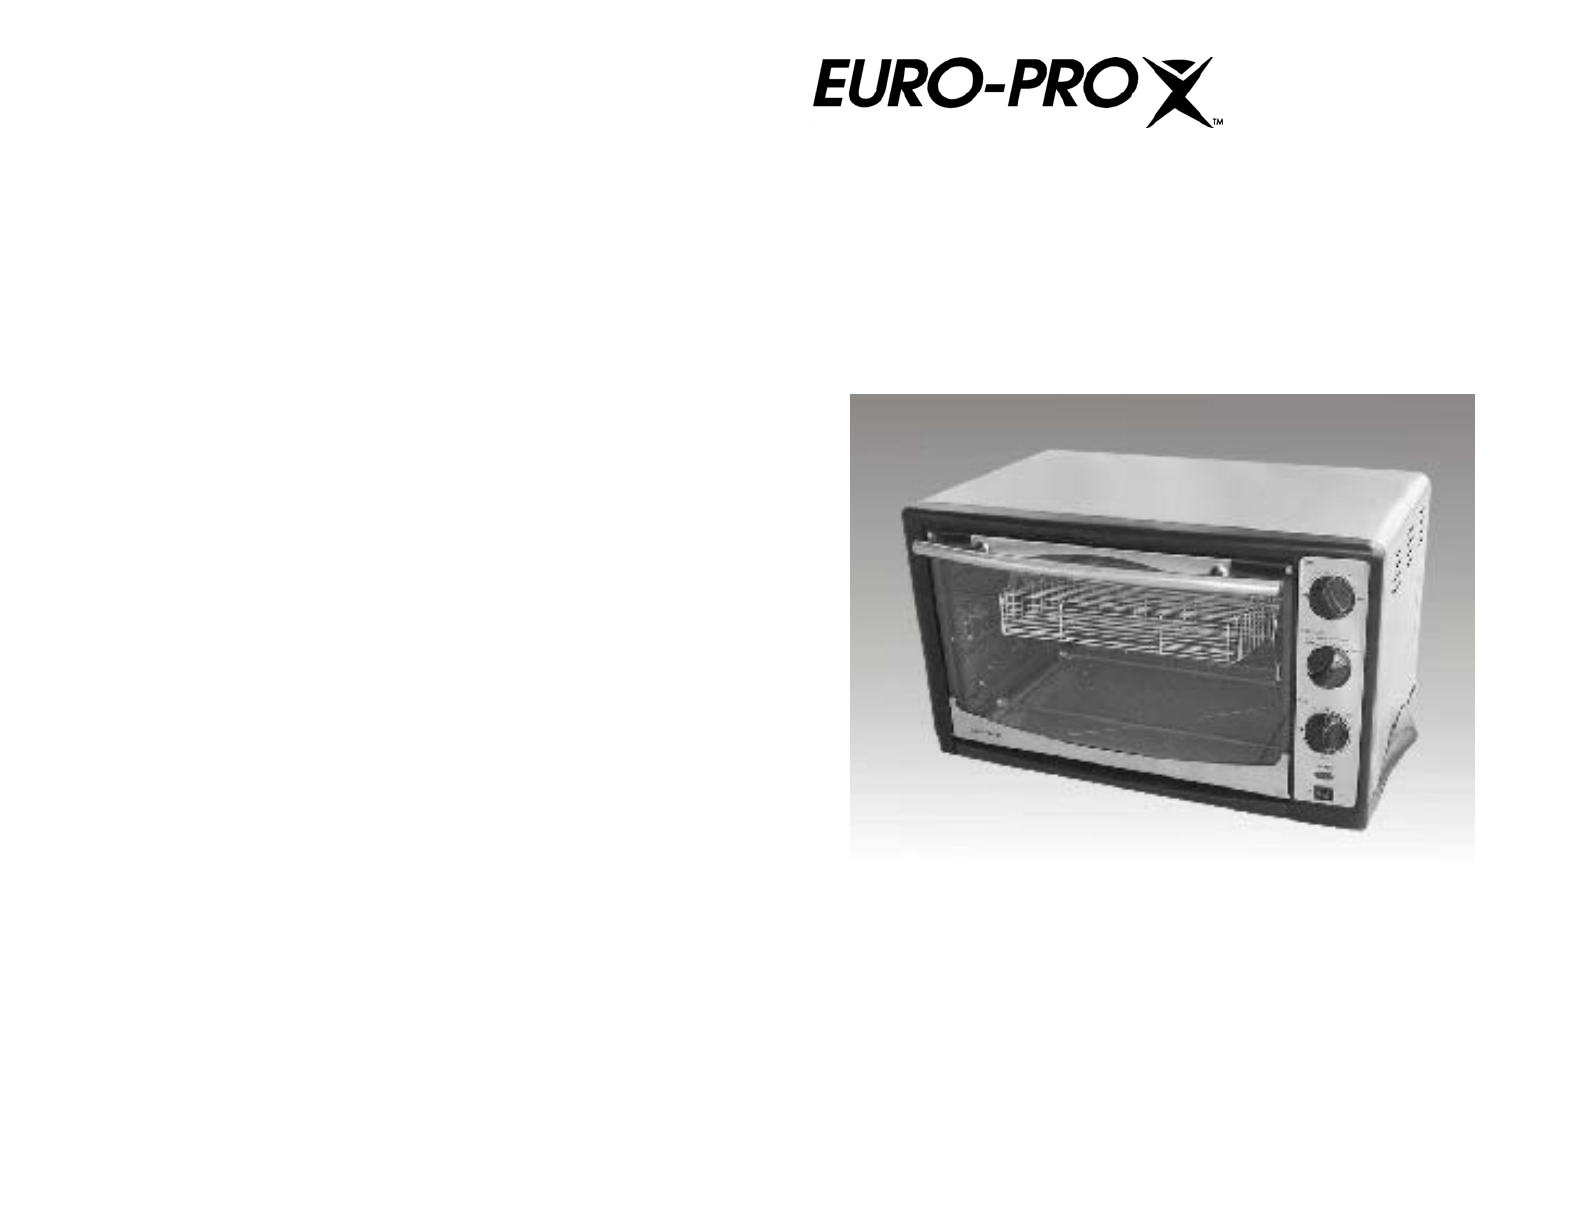 euro pro toaster to285 user guide manualsonline com rh kitchen manualsonline com Euro-Pro Shark Vacuum Euro-Pro Toaster Oven Manual